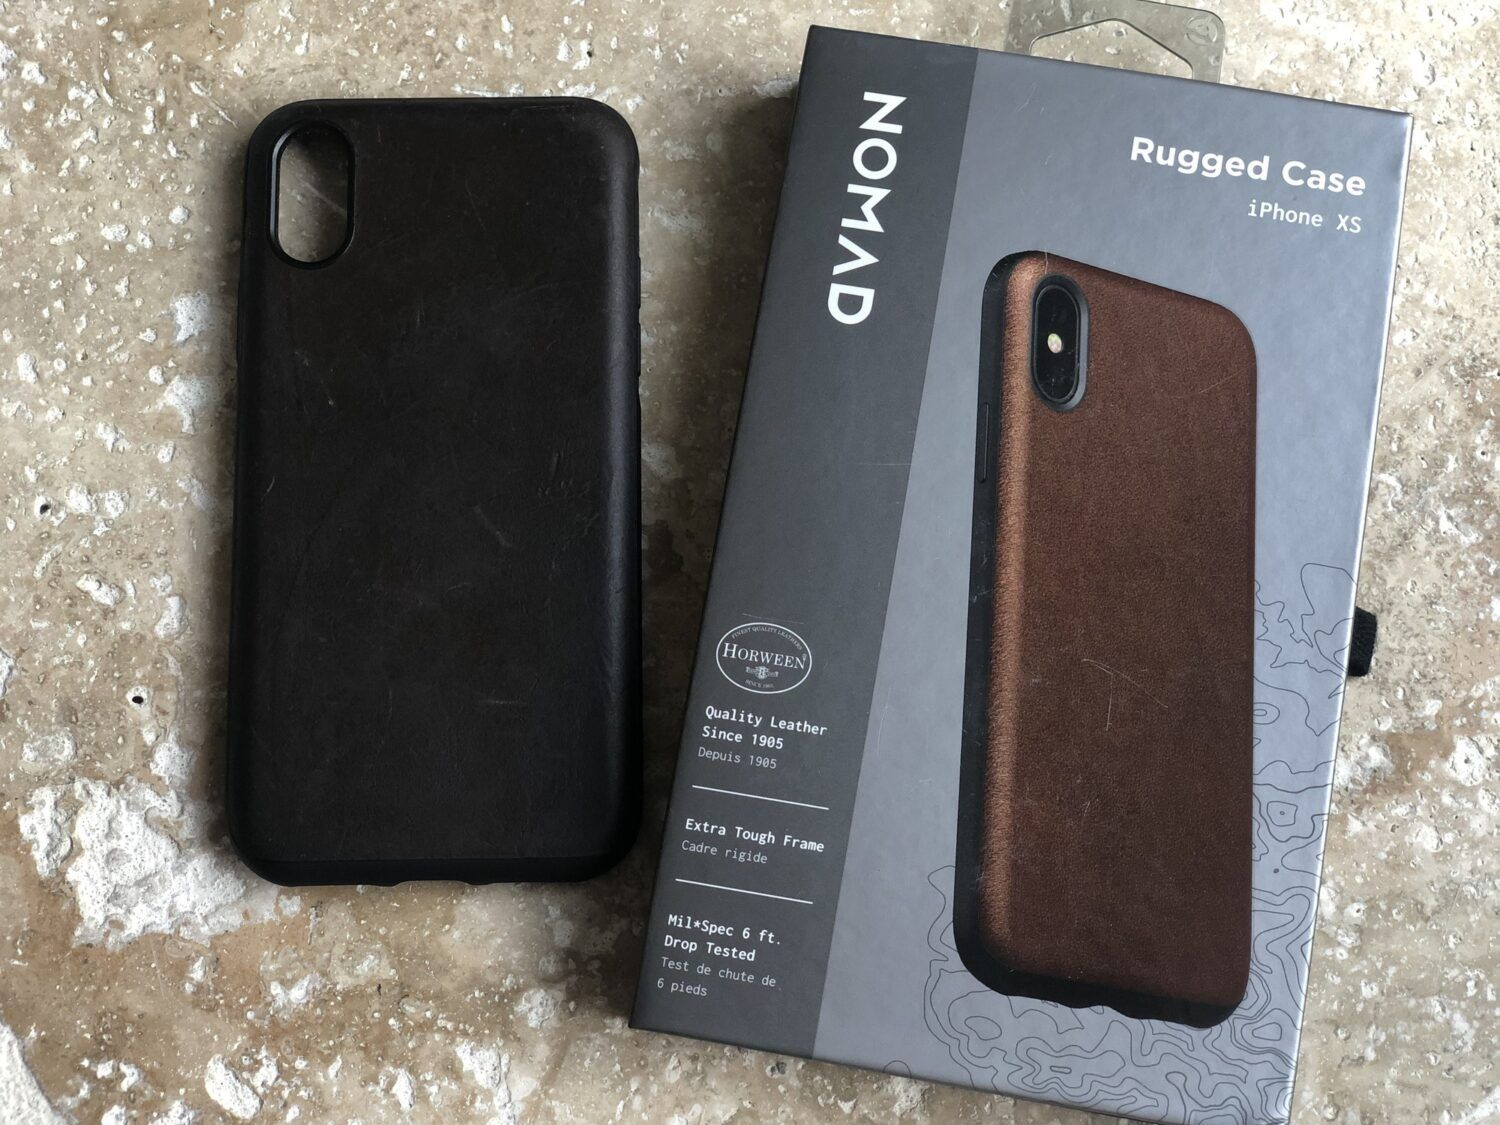 Nomad_iPhone-coque-protection